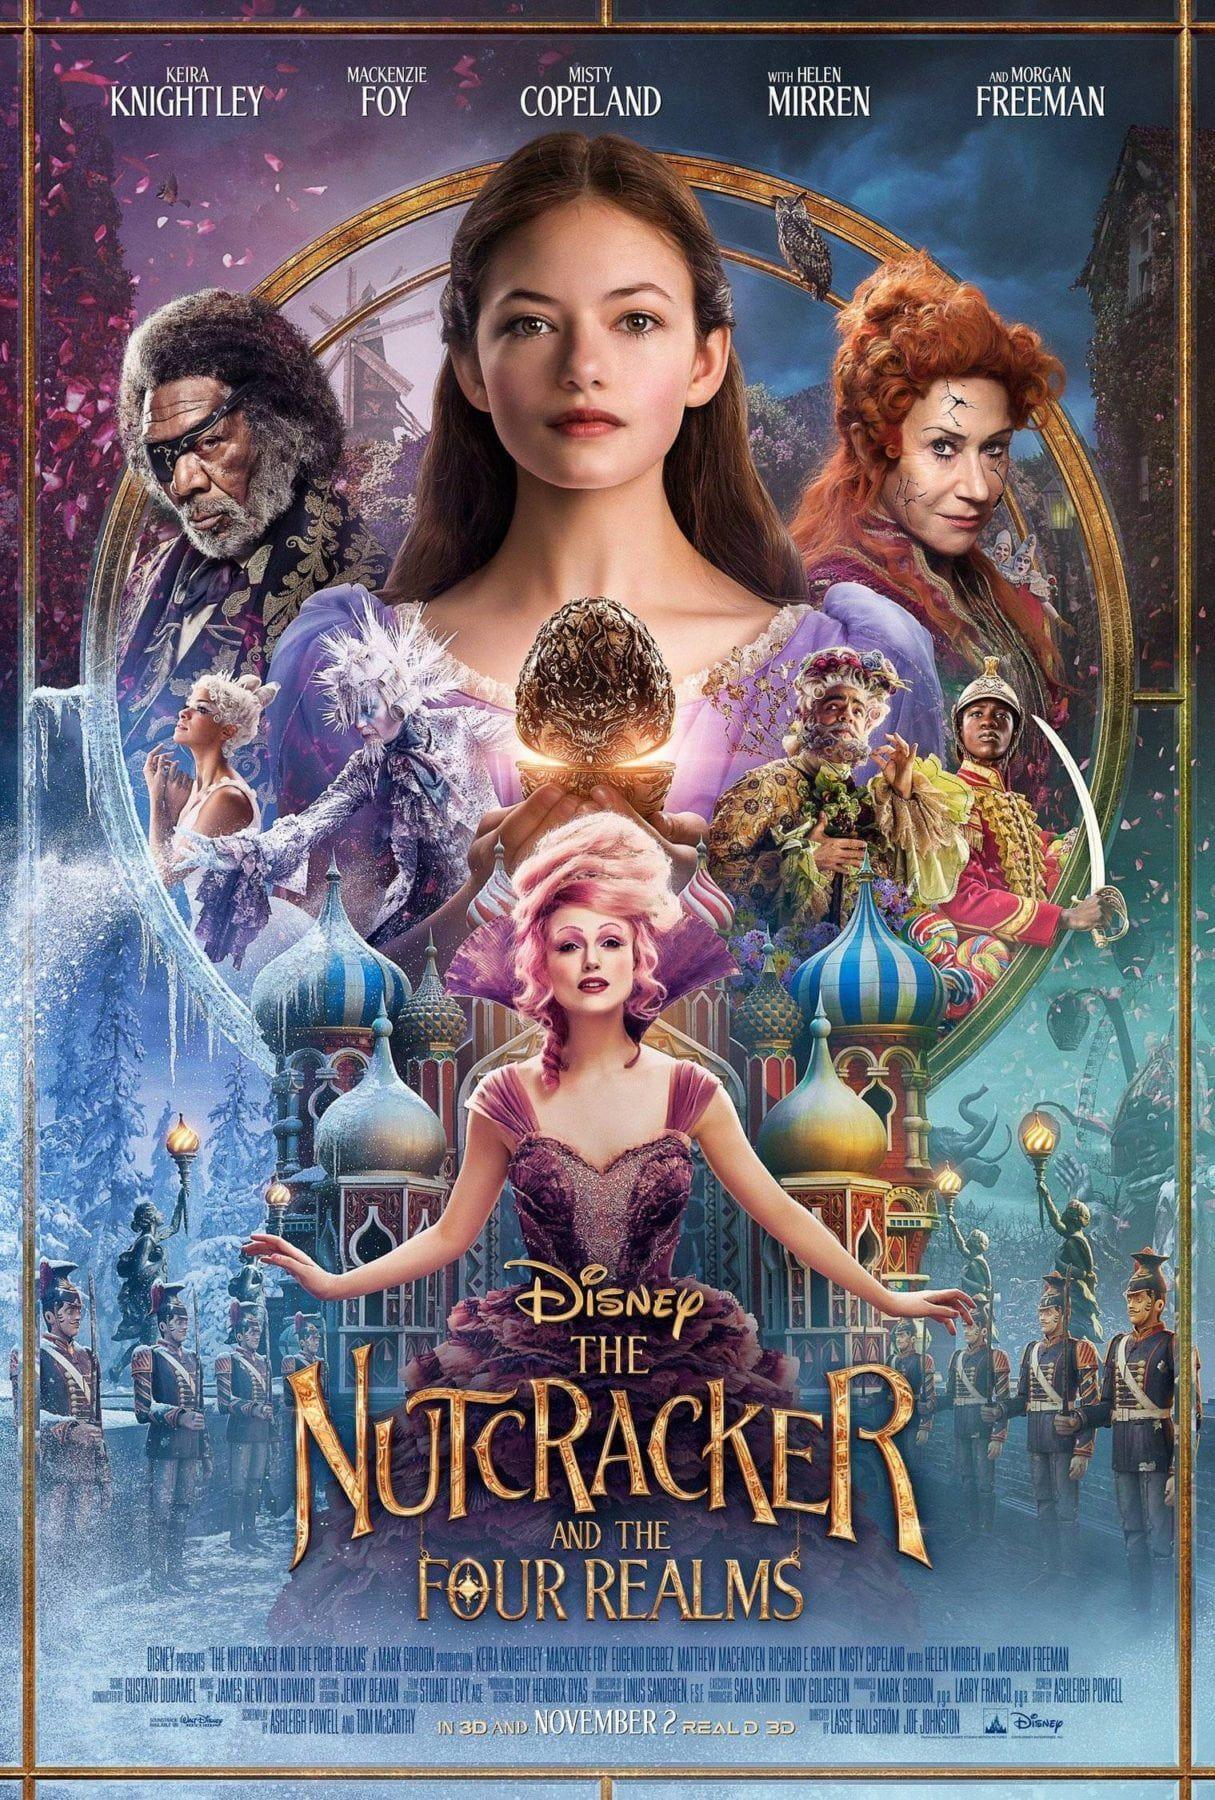 The Nutcracker And The Four Realms New Movie Trailer And Poster